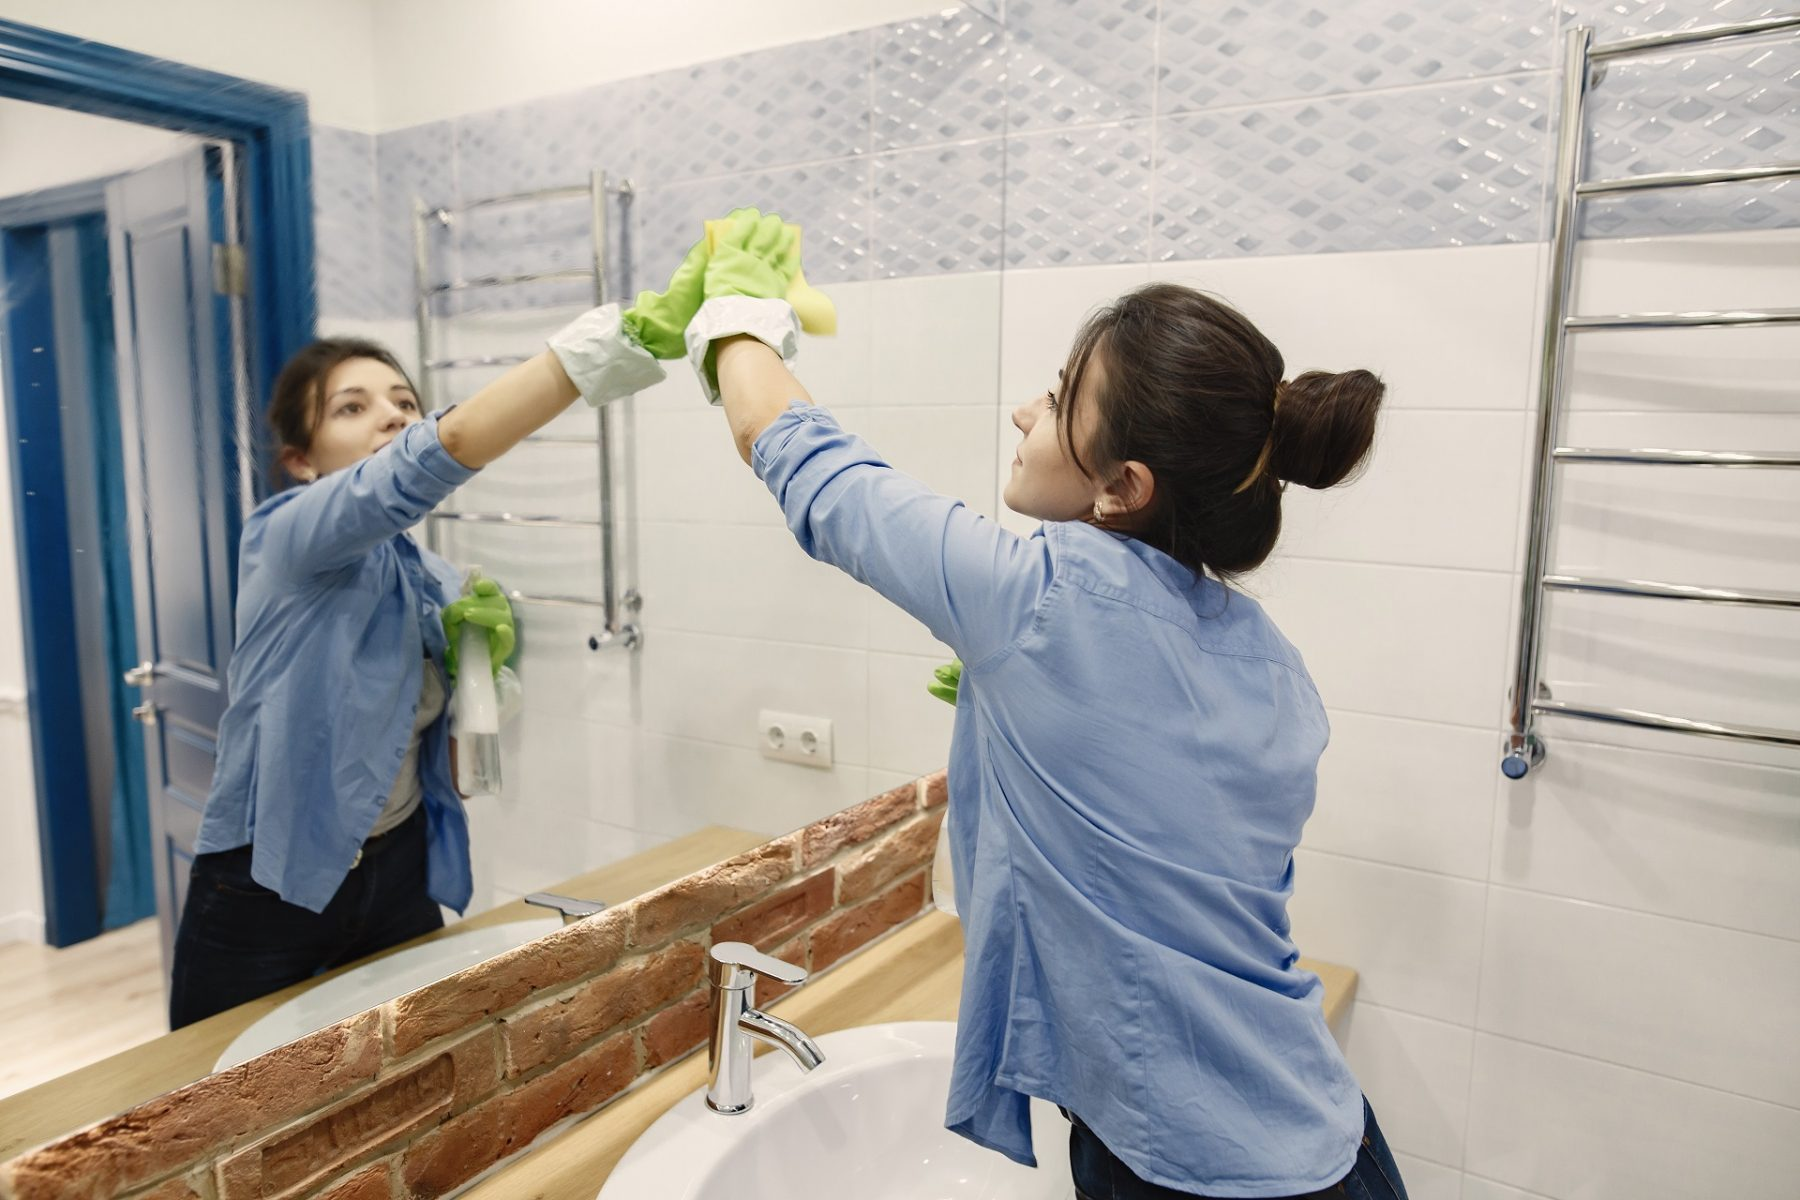 Professional housekeeper cleaning a bathroom in a home